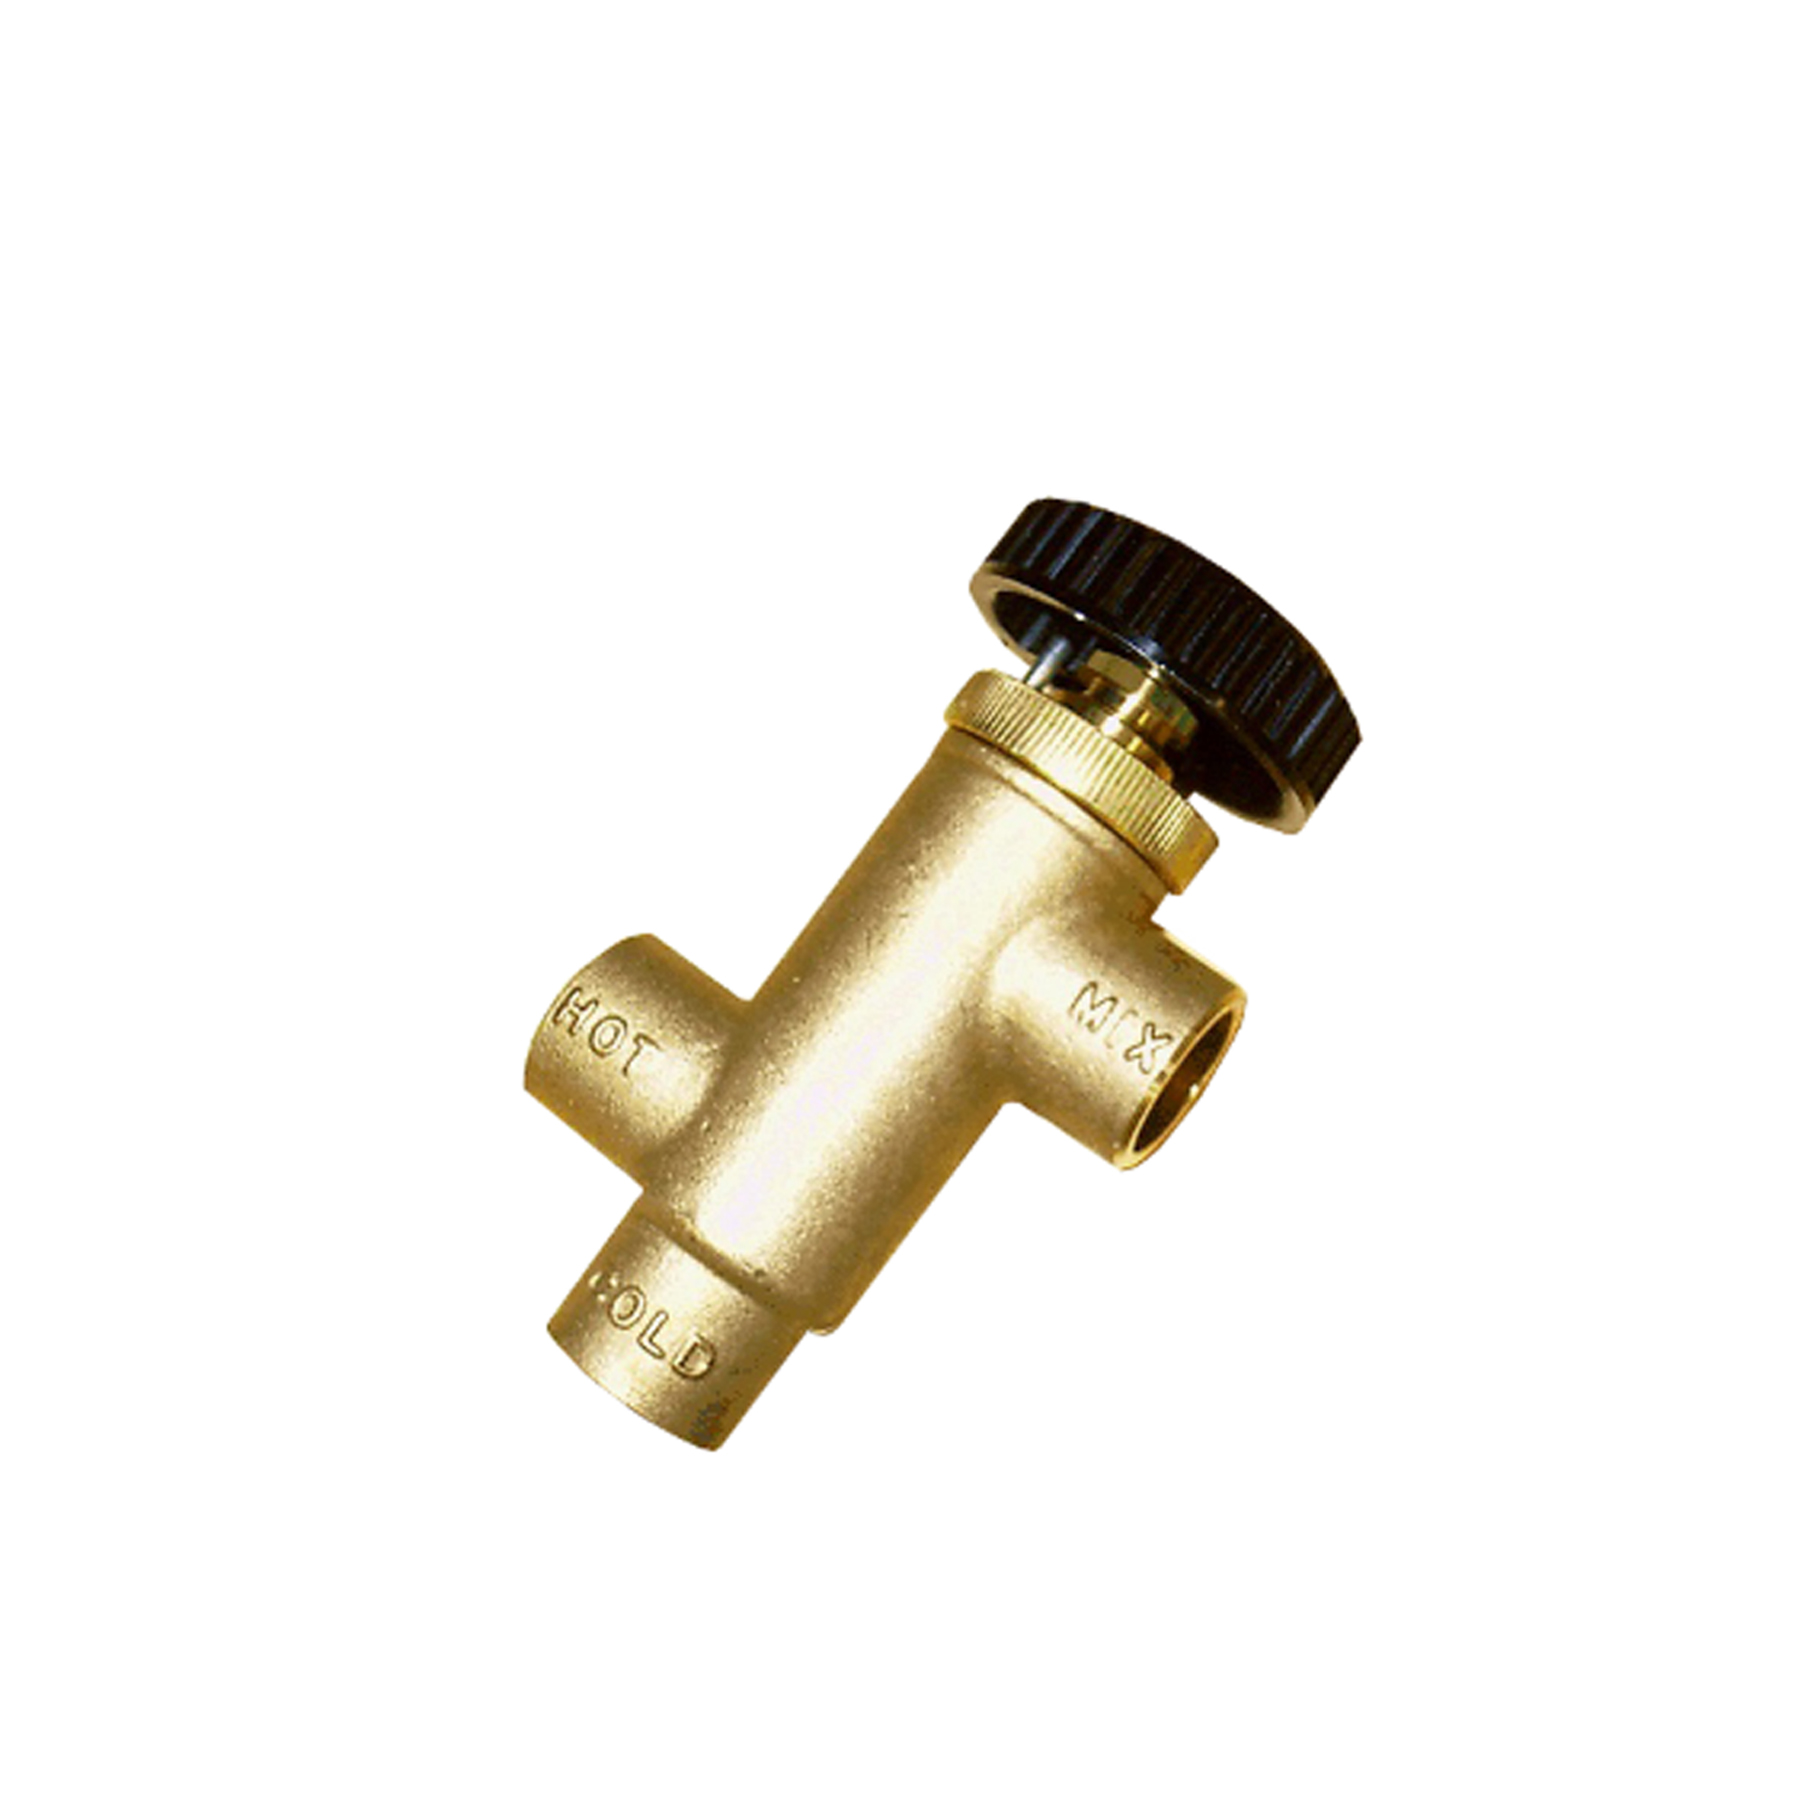 Tempering Valve, 120°F to 160°F